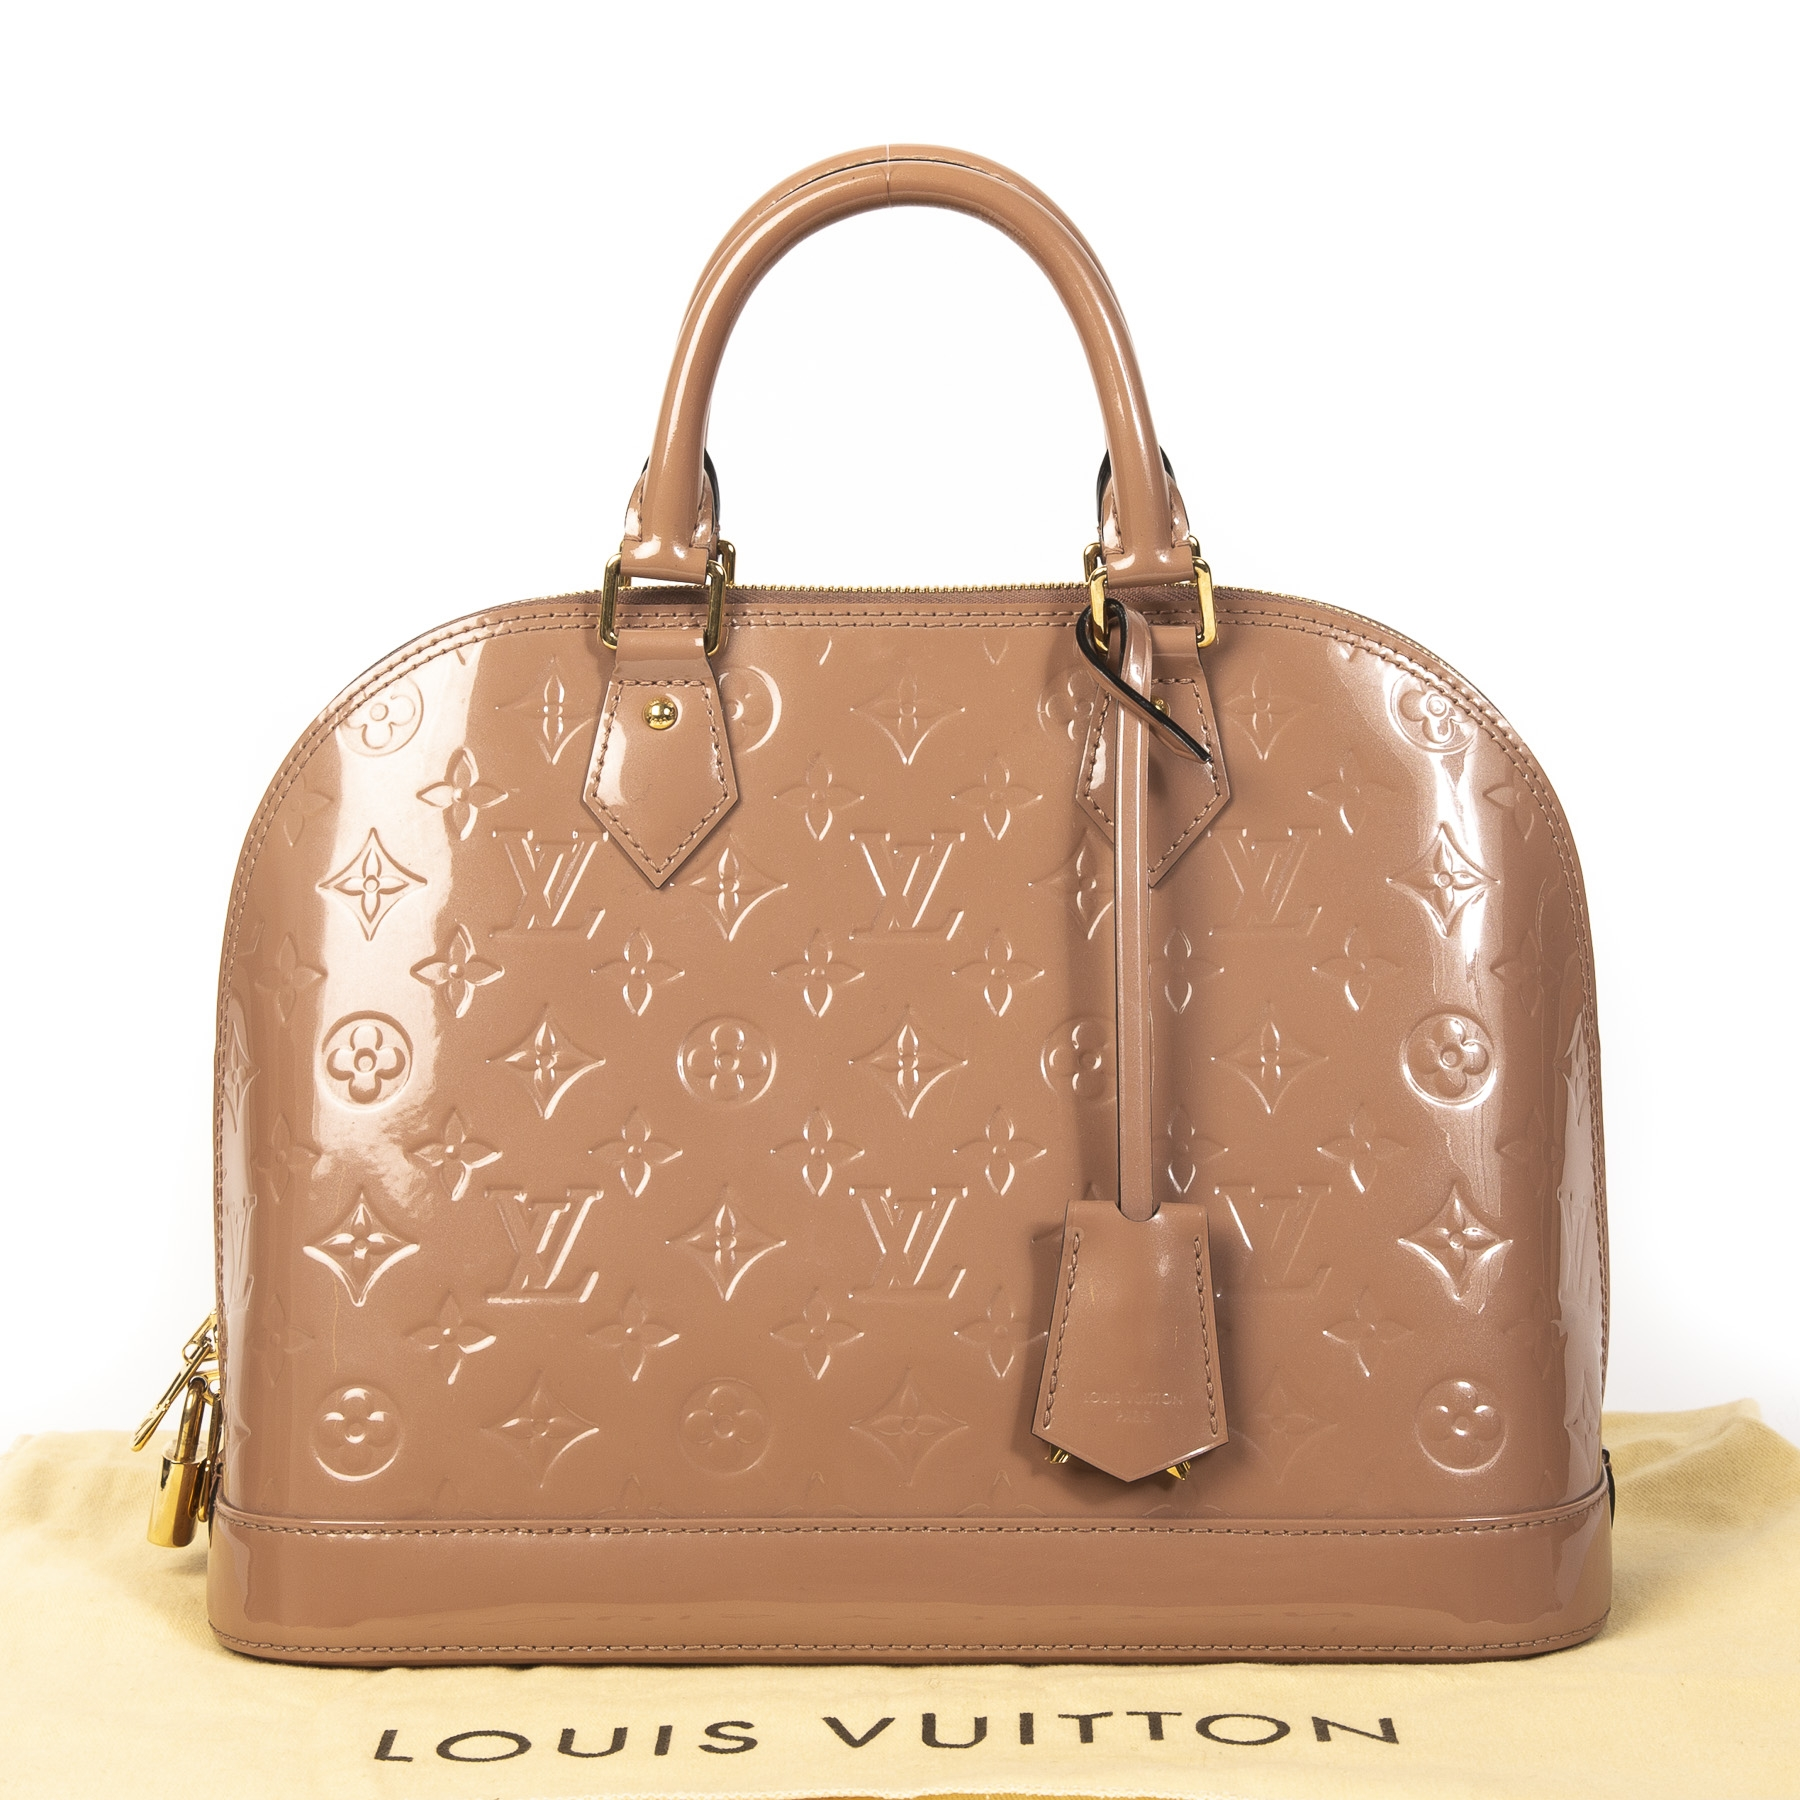 Louis Vuitton Alma Vernis Vieux Rose PM